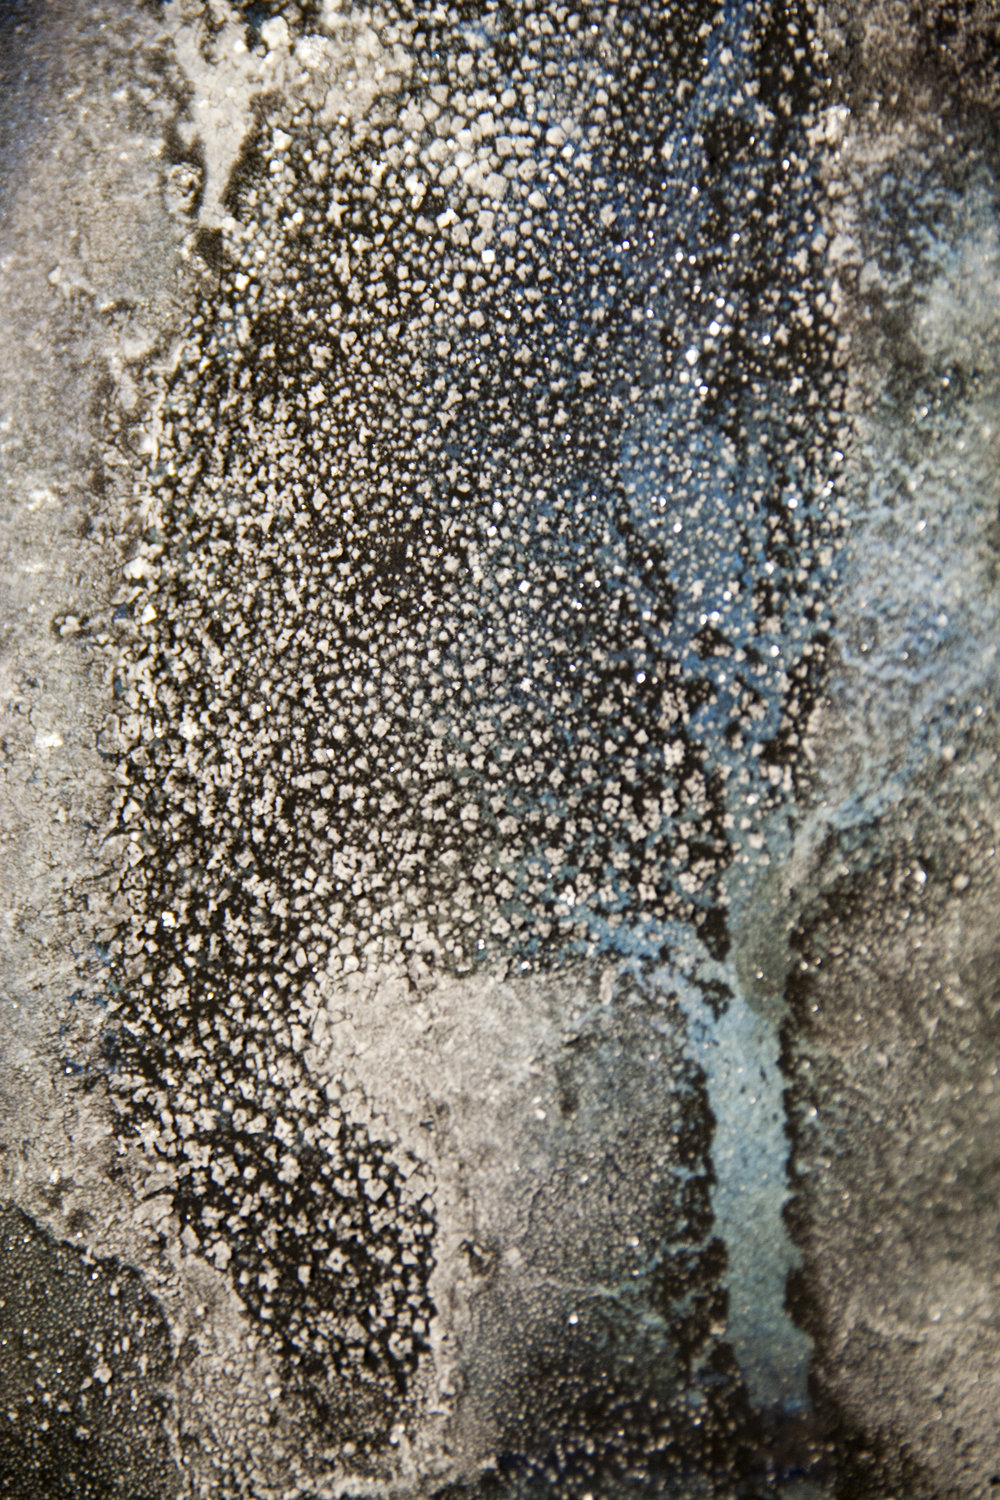 Nika Blasser,  Salt Land, Salt Sea: Drømme fra vor Jord  (detail). Photo by Minik Busk Langkjær.